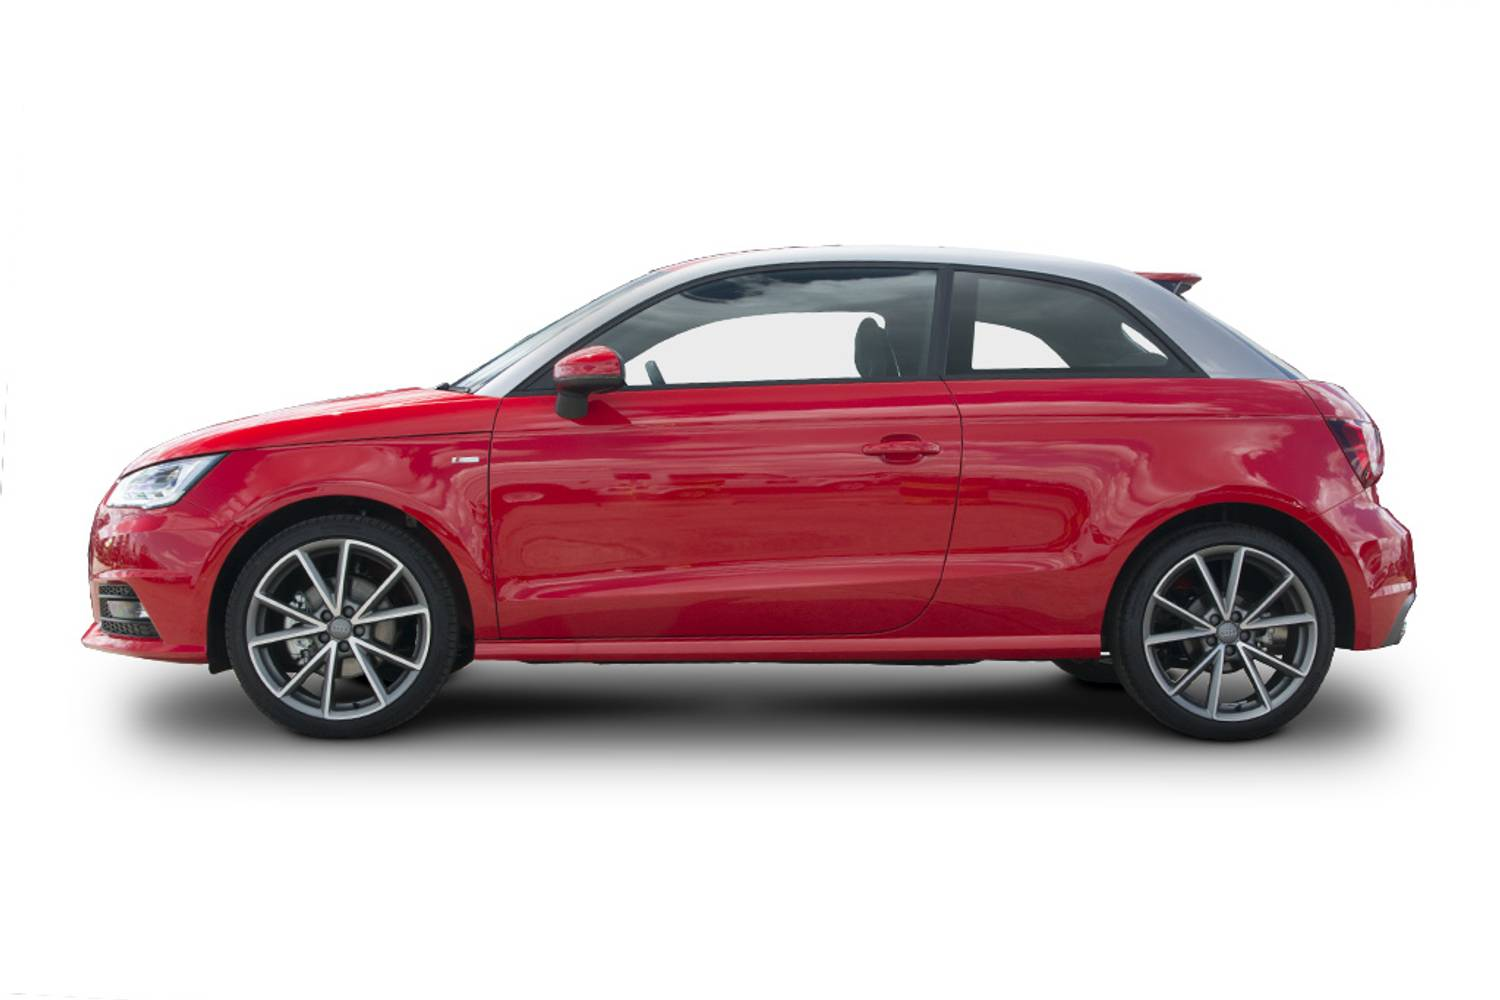 Used Audi Cars For Sale  London Herts amp Essex  Essex